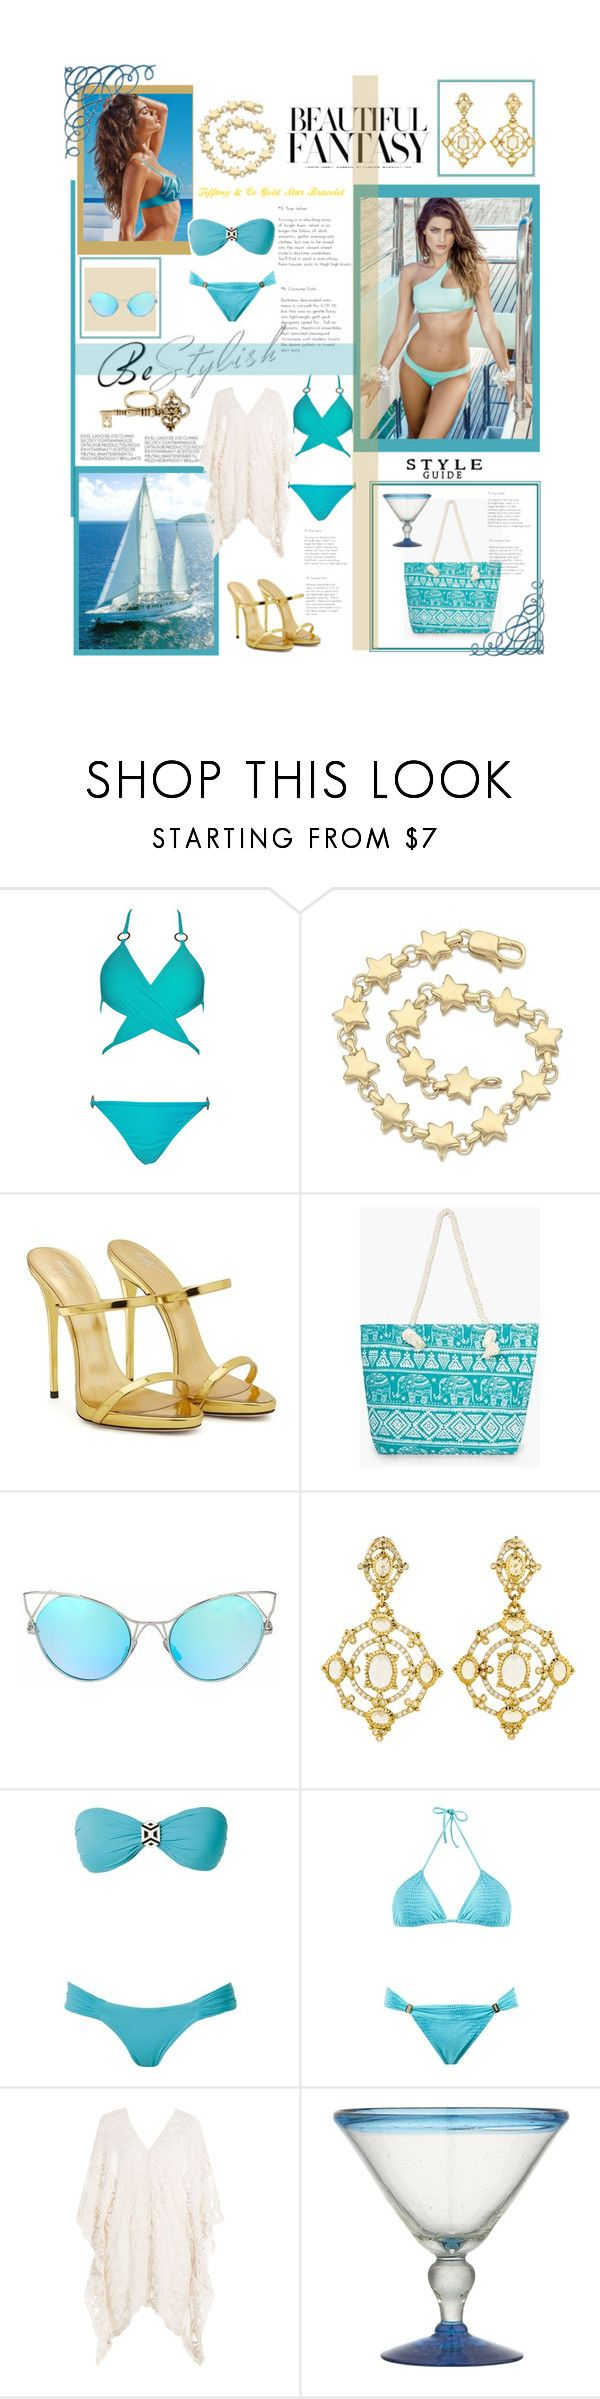 """""""Beautiful Fantasy # 326"""" by dreamer1983 ❤ liked on Polyvore featuring Tiffany & Co., Clayton, Giuseppe Zanotti, Boohoo, Judith Ripka, SUB, Brigitte, Eberjey, Crate and Barrel and House of Harlow 1960"""